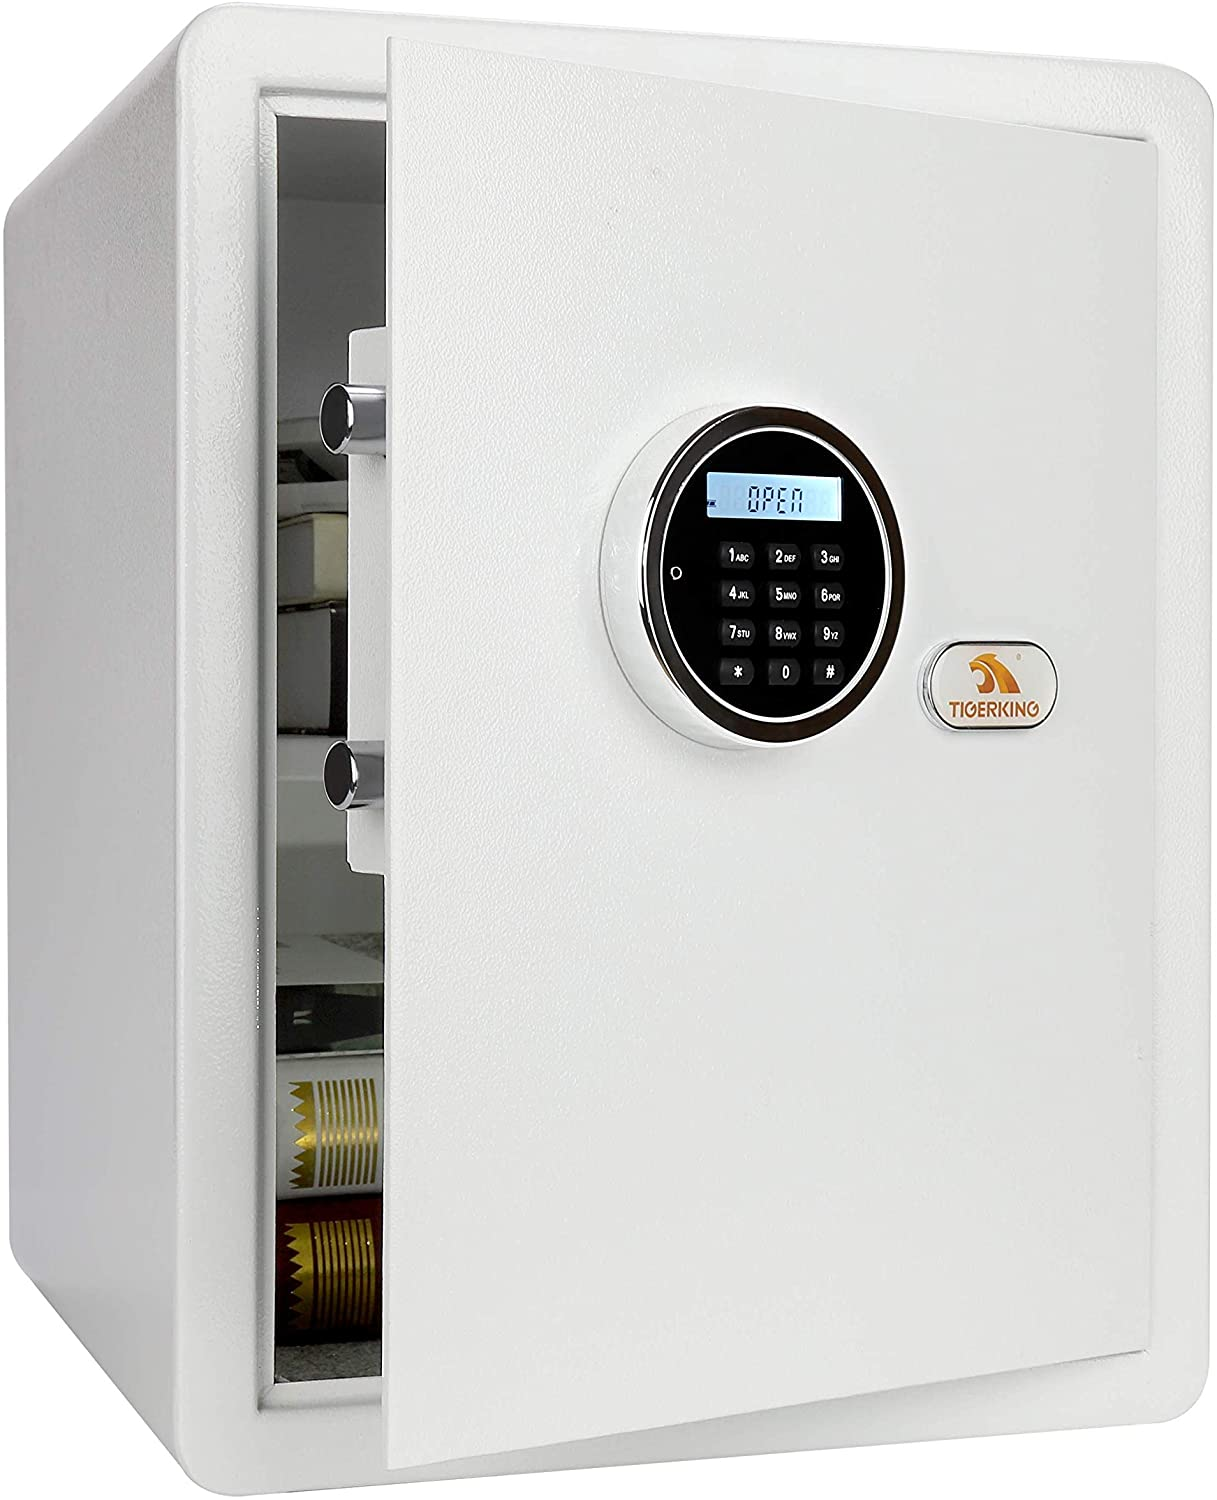 TIGERKING Security Home Safe, Digital Safe Box With Key, White- 1.8 Cubic Feet